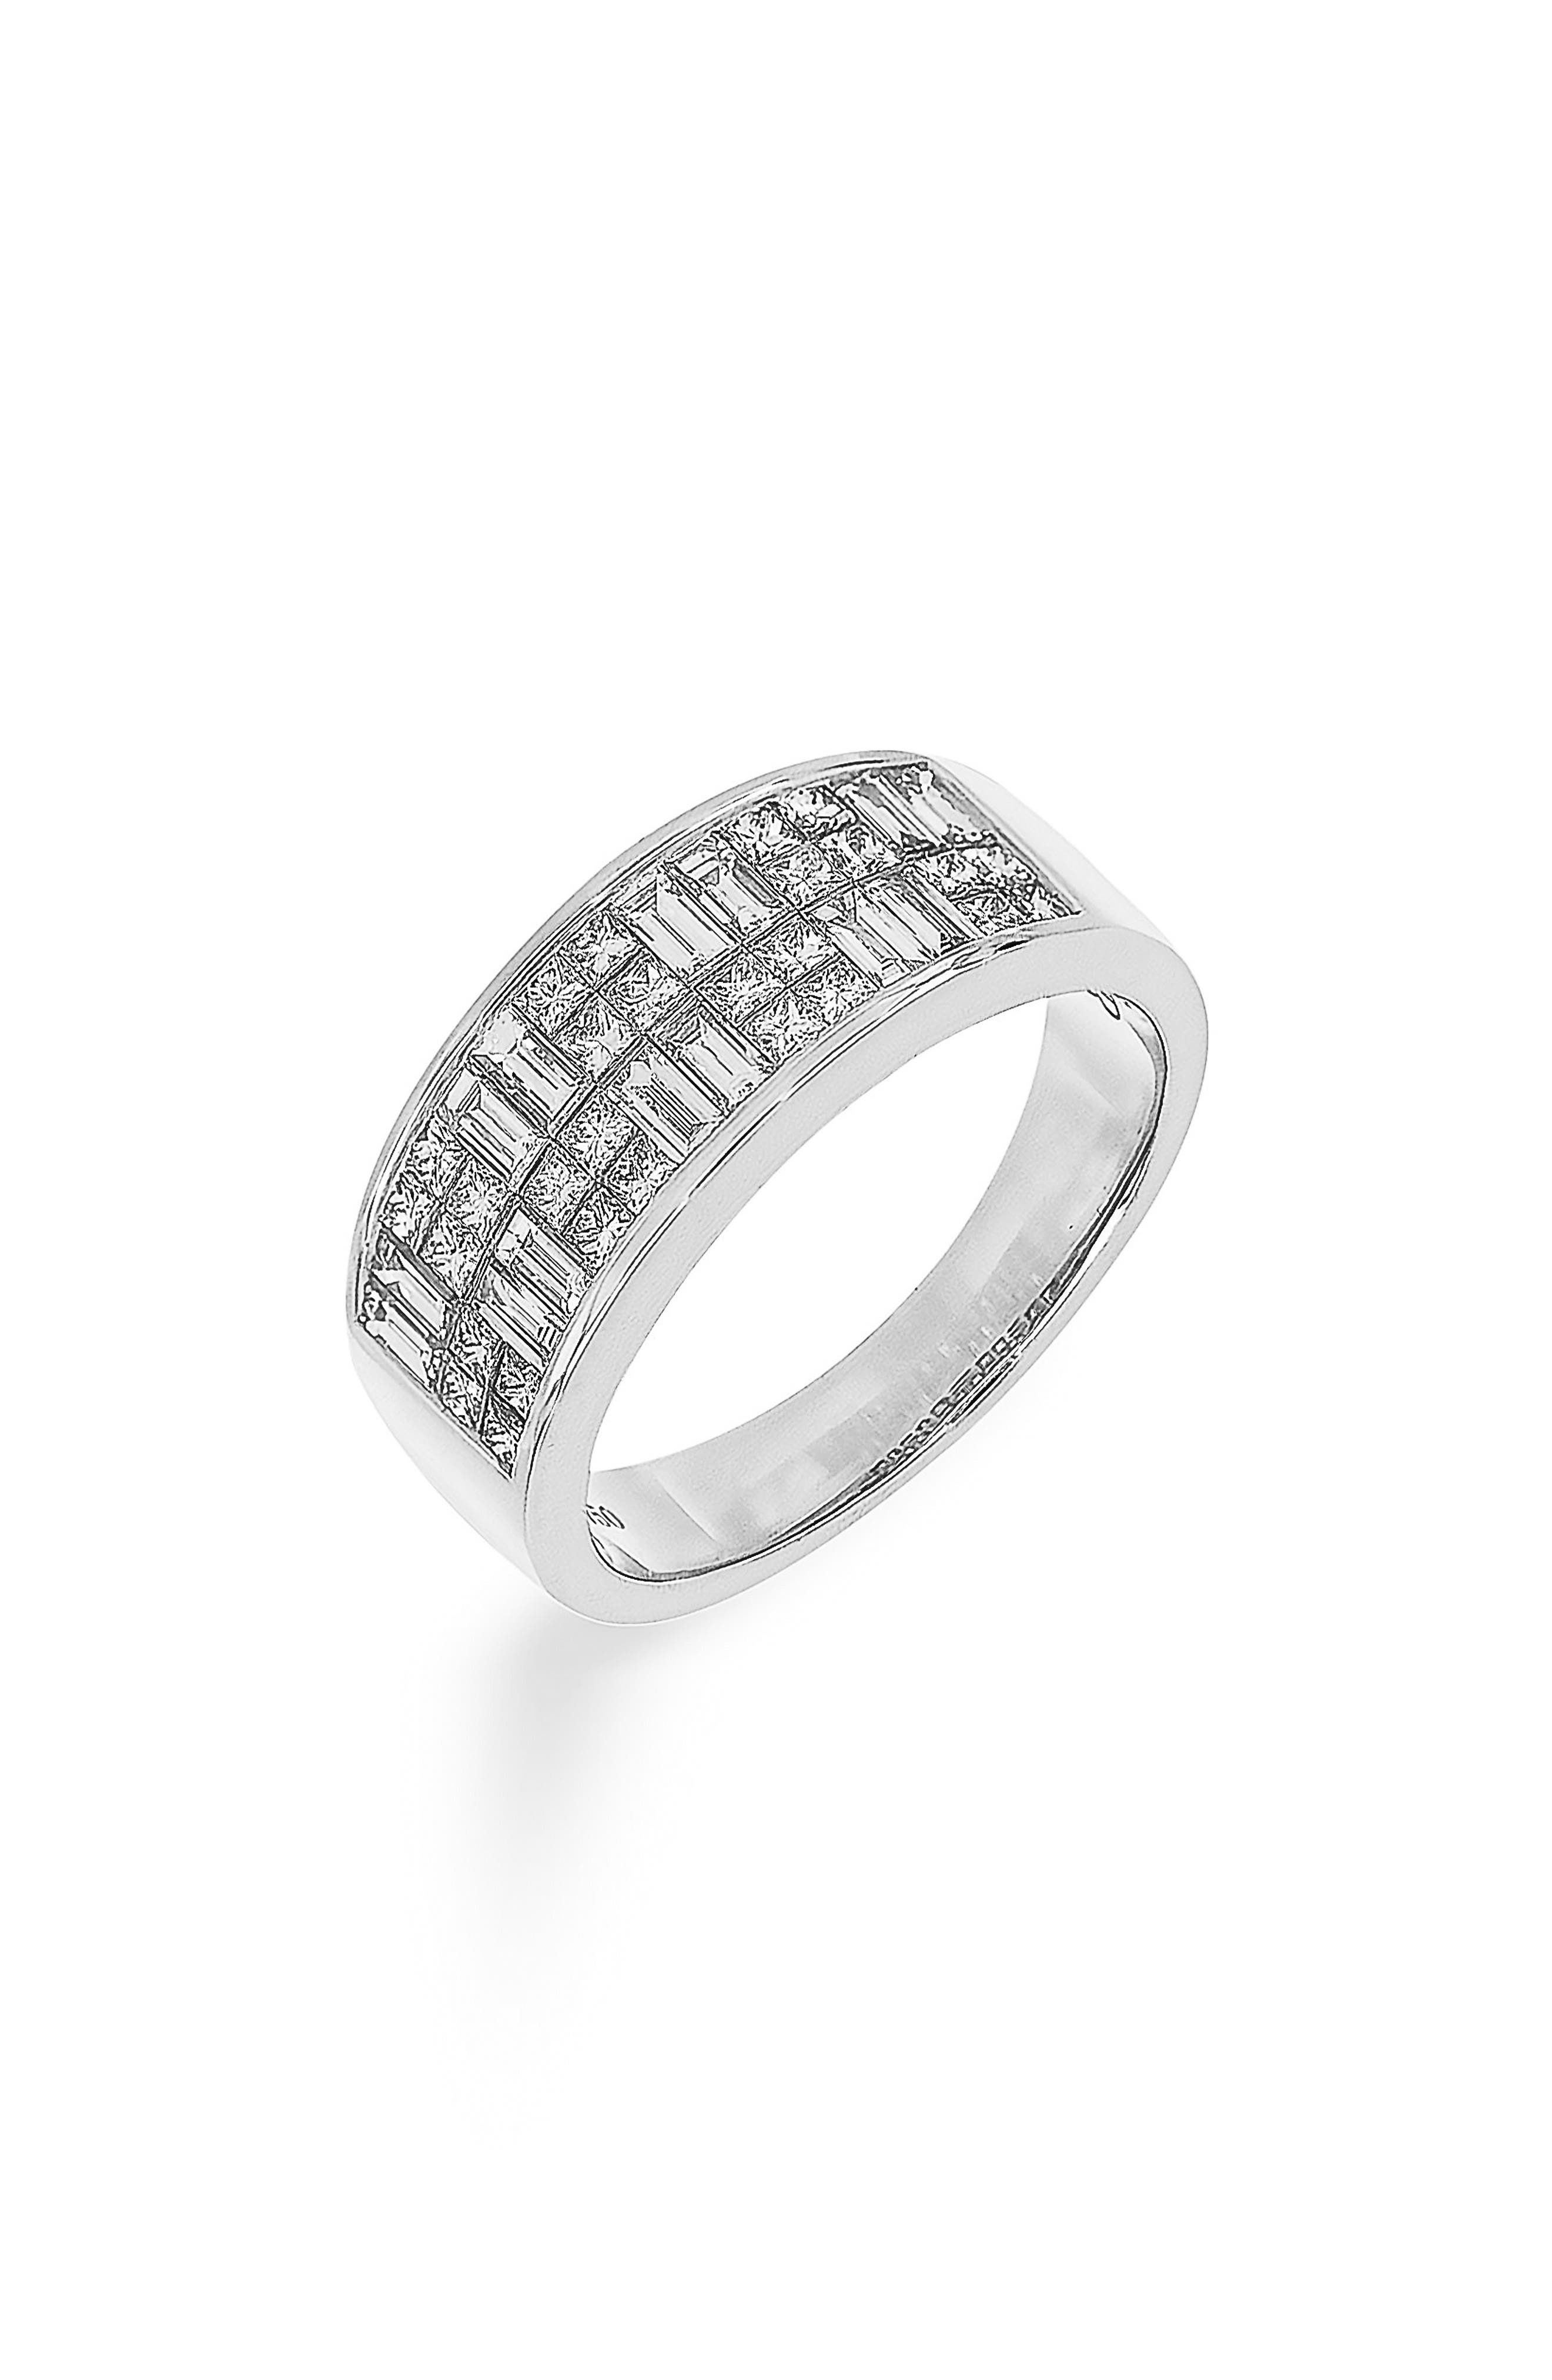 Alternate Image 1 Selected - Bony Levy Mixed Shape Diamond Ring (Nordstrom Exclusive)